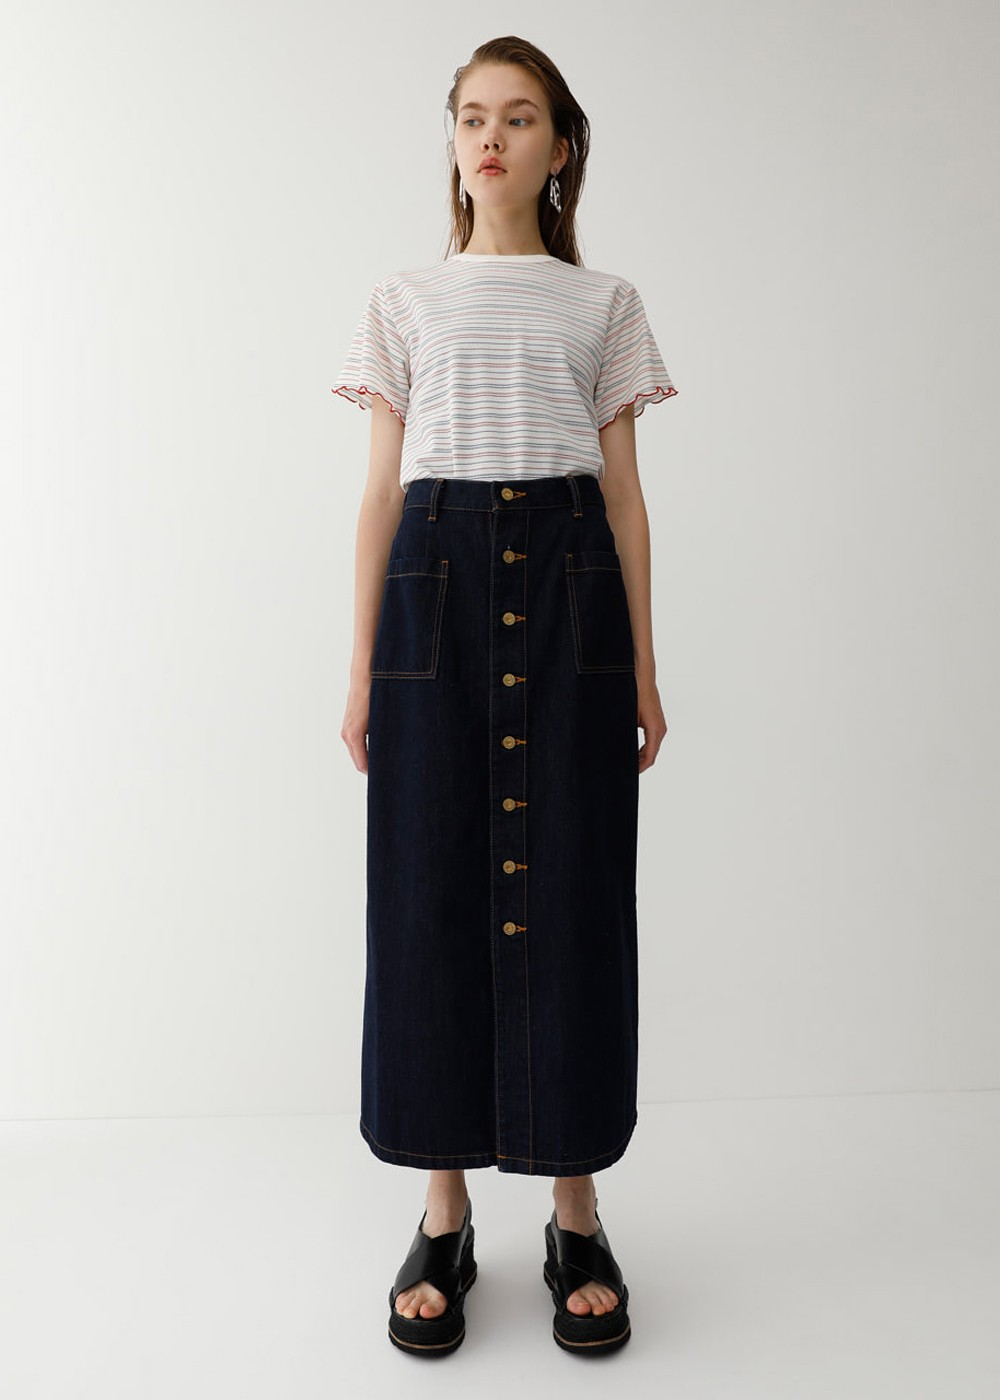 【最大60%OFF】BUTTON UP LONG SKIRT|One Wash|ロングスカート|MOUSSY